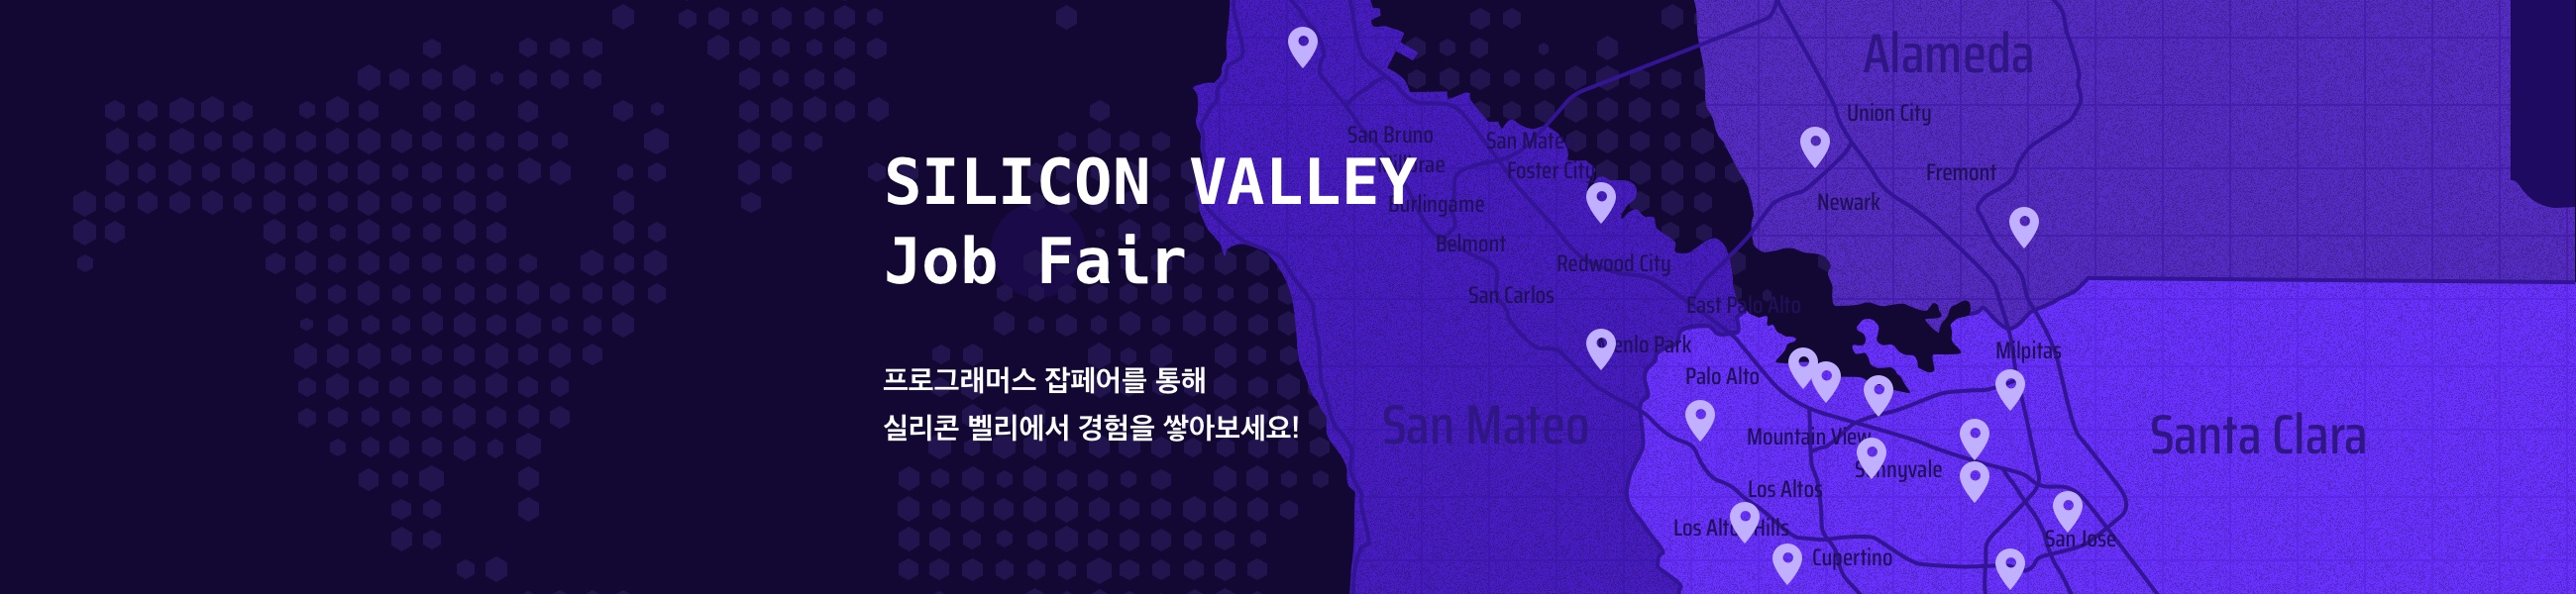 Silicon Valley Job Fair 2019의 이미지